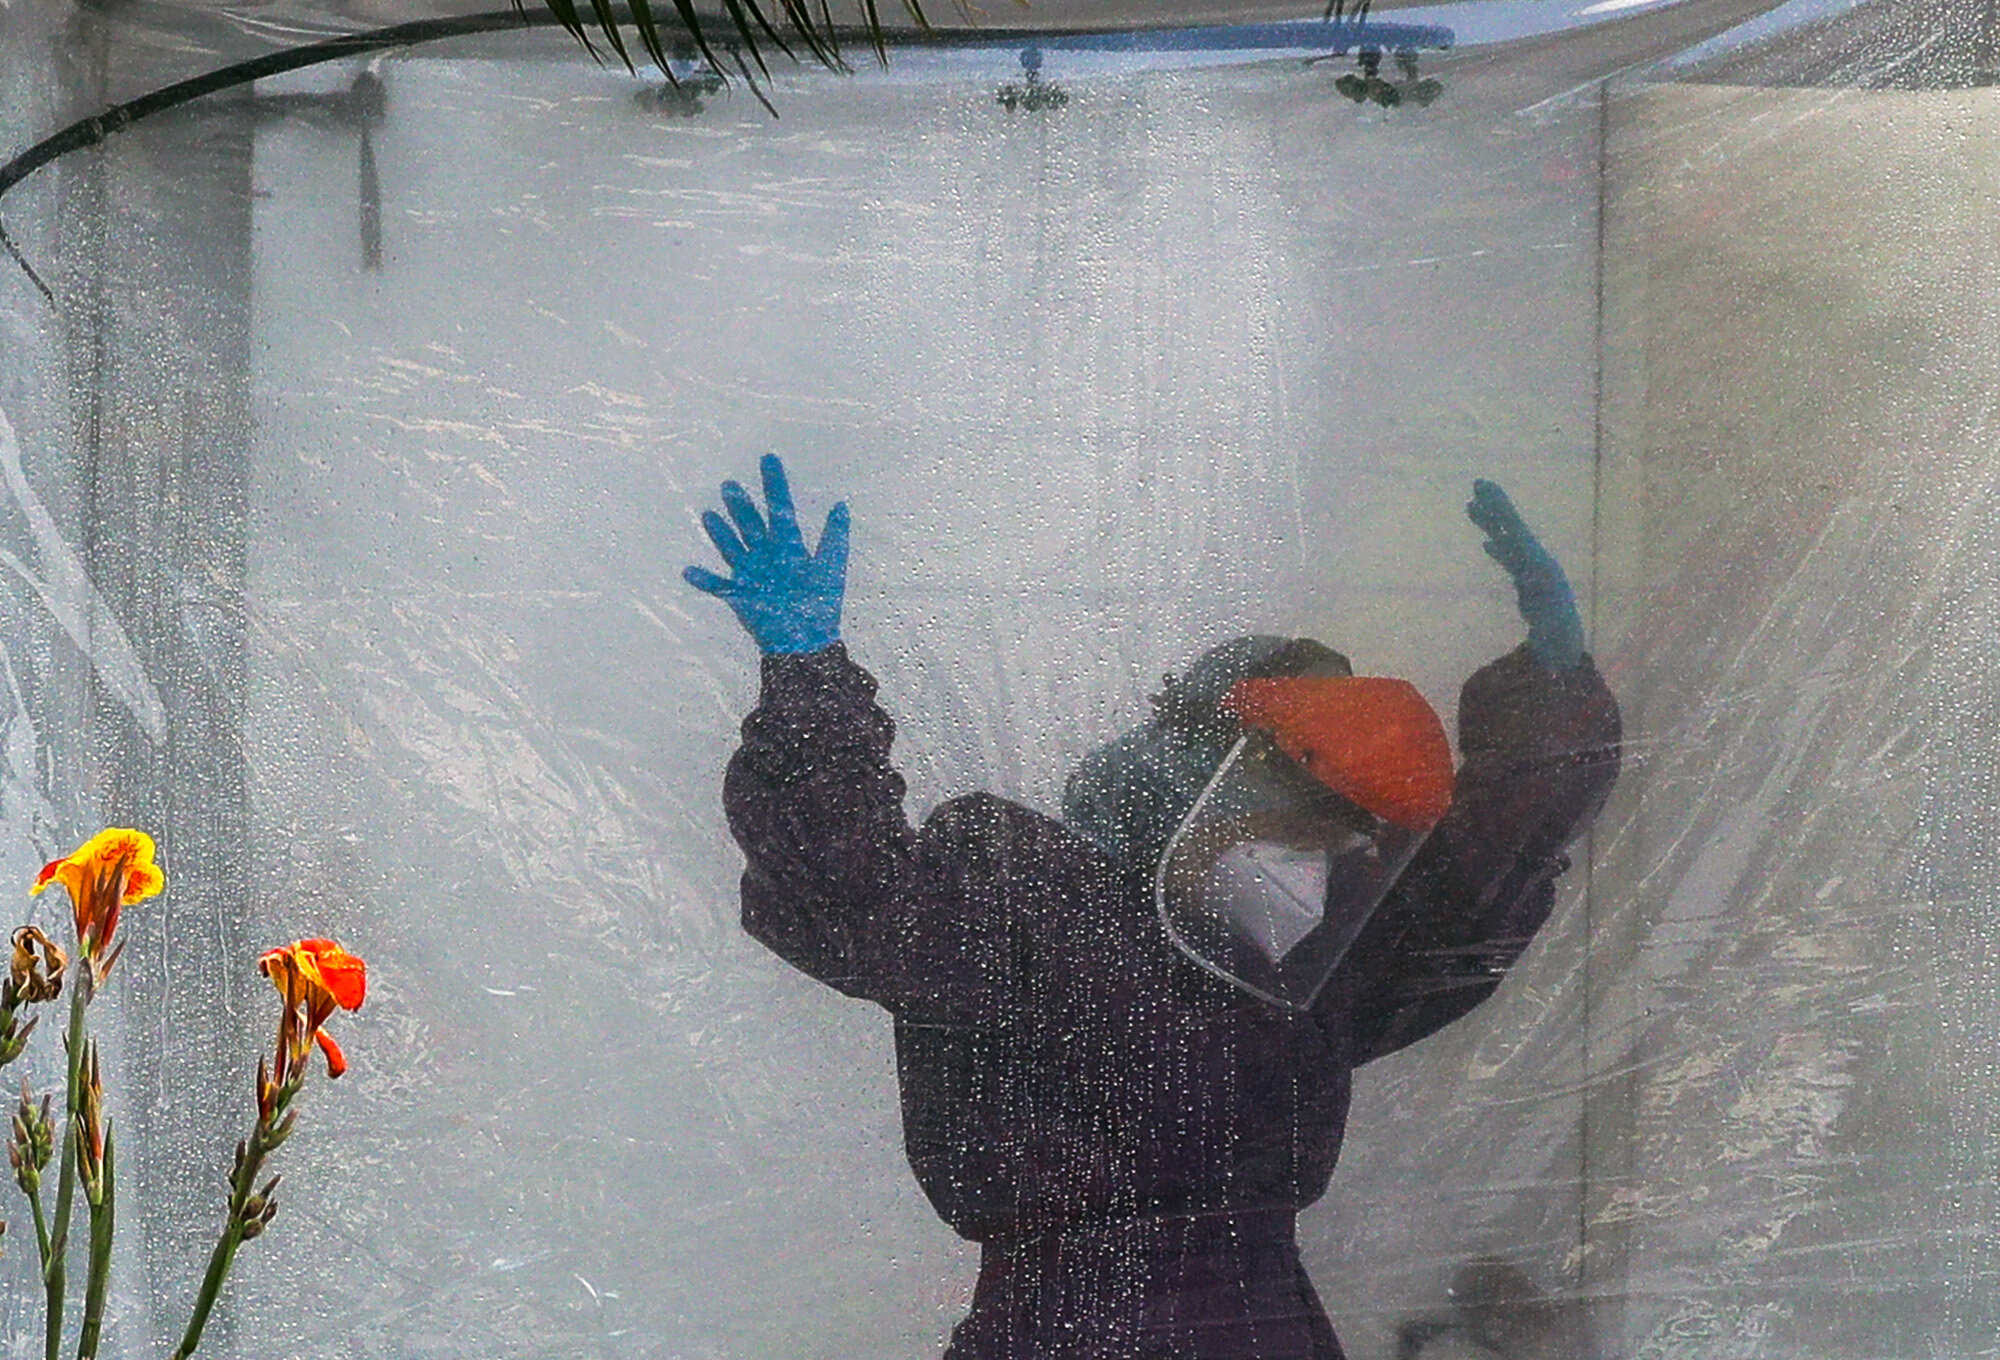 A health worker wearing a protective suit is disinfected in a portable tent outside the Gat Andres Bonifacio Memorial Medical Center in Manila, Philippines, on April 27, 2020, during an enhanced community quarantine to prevent the spread of the coronavirus. (AP Photo/Aaron Favila)